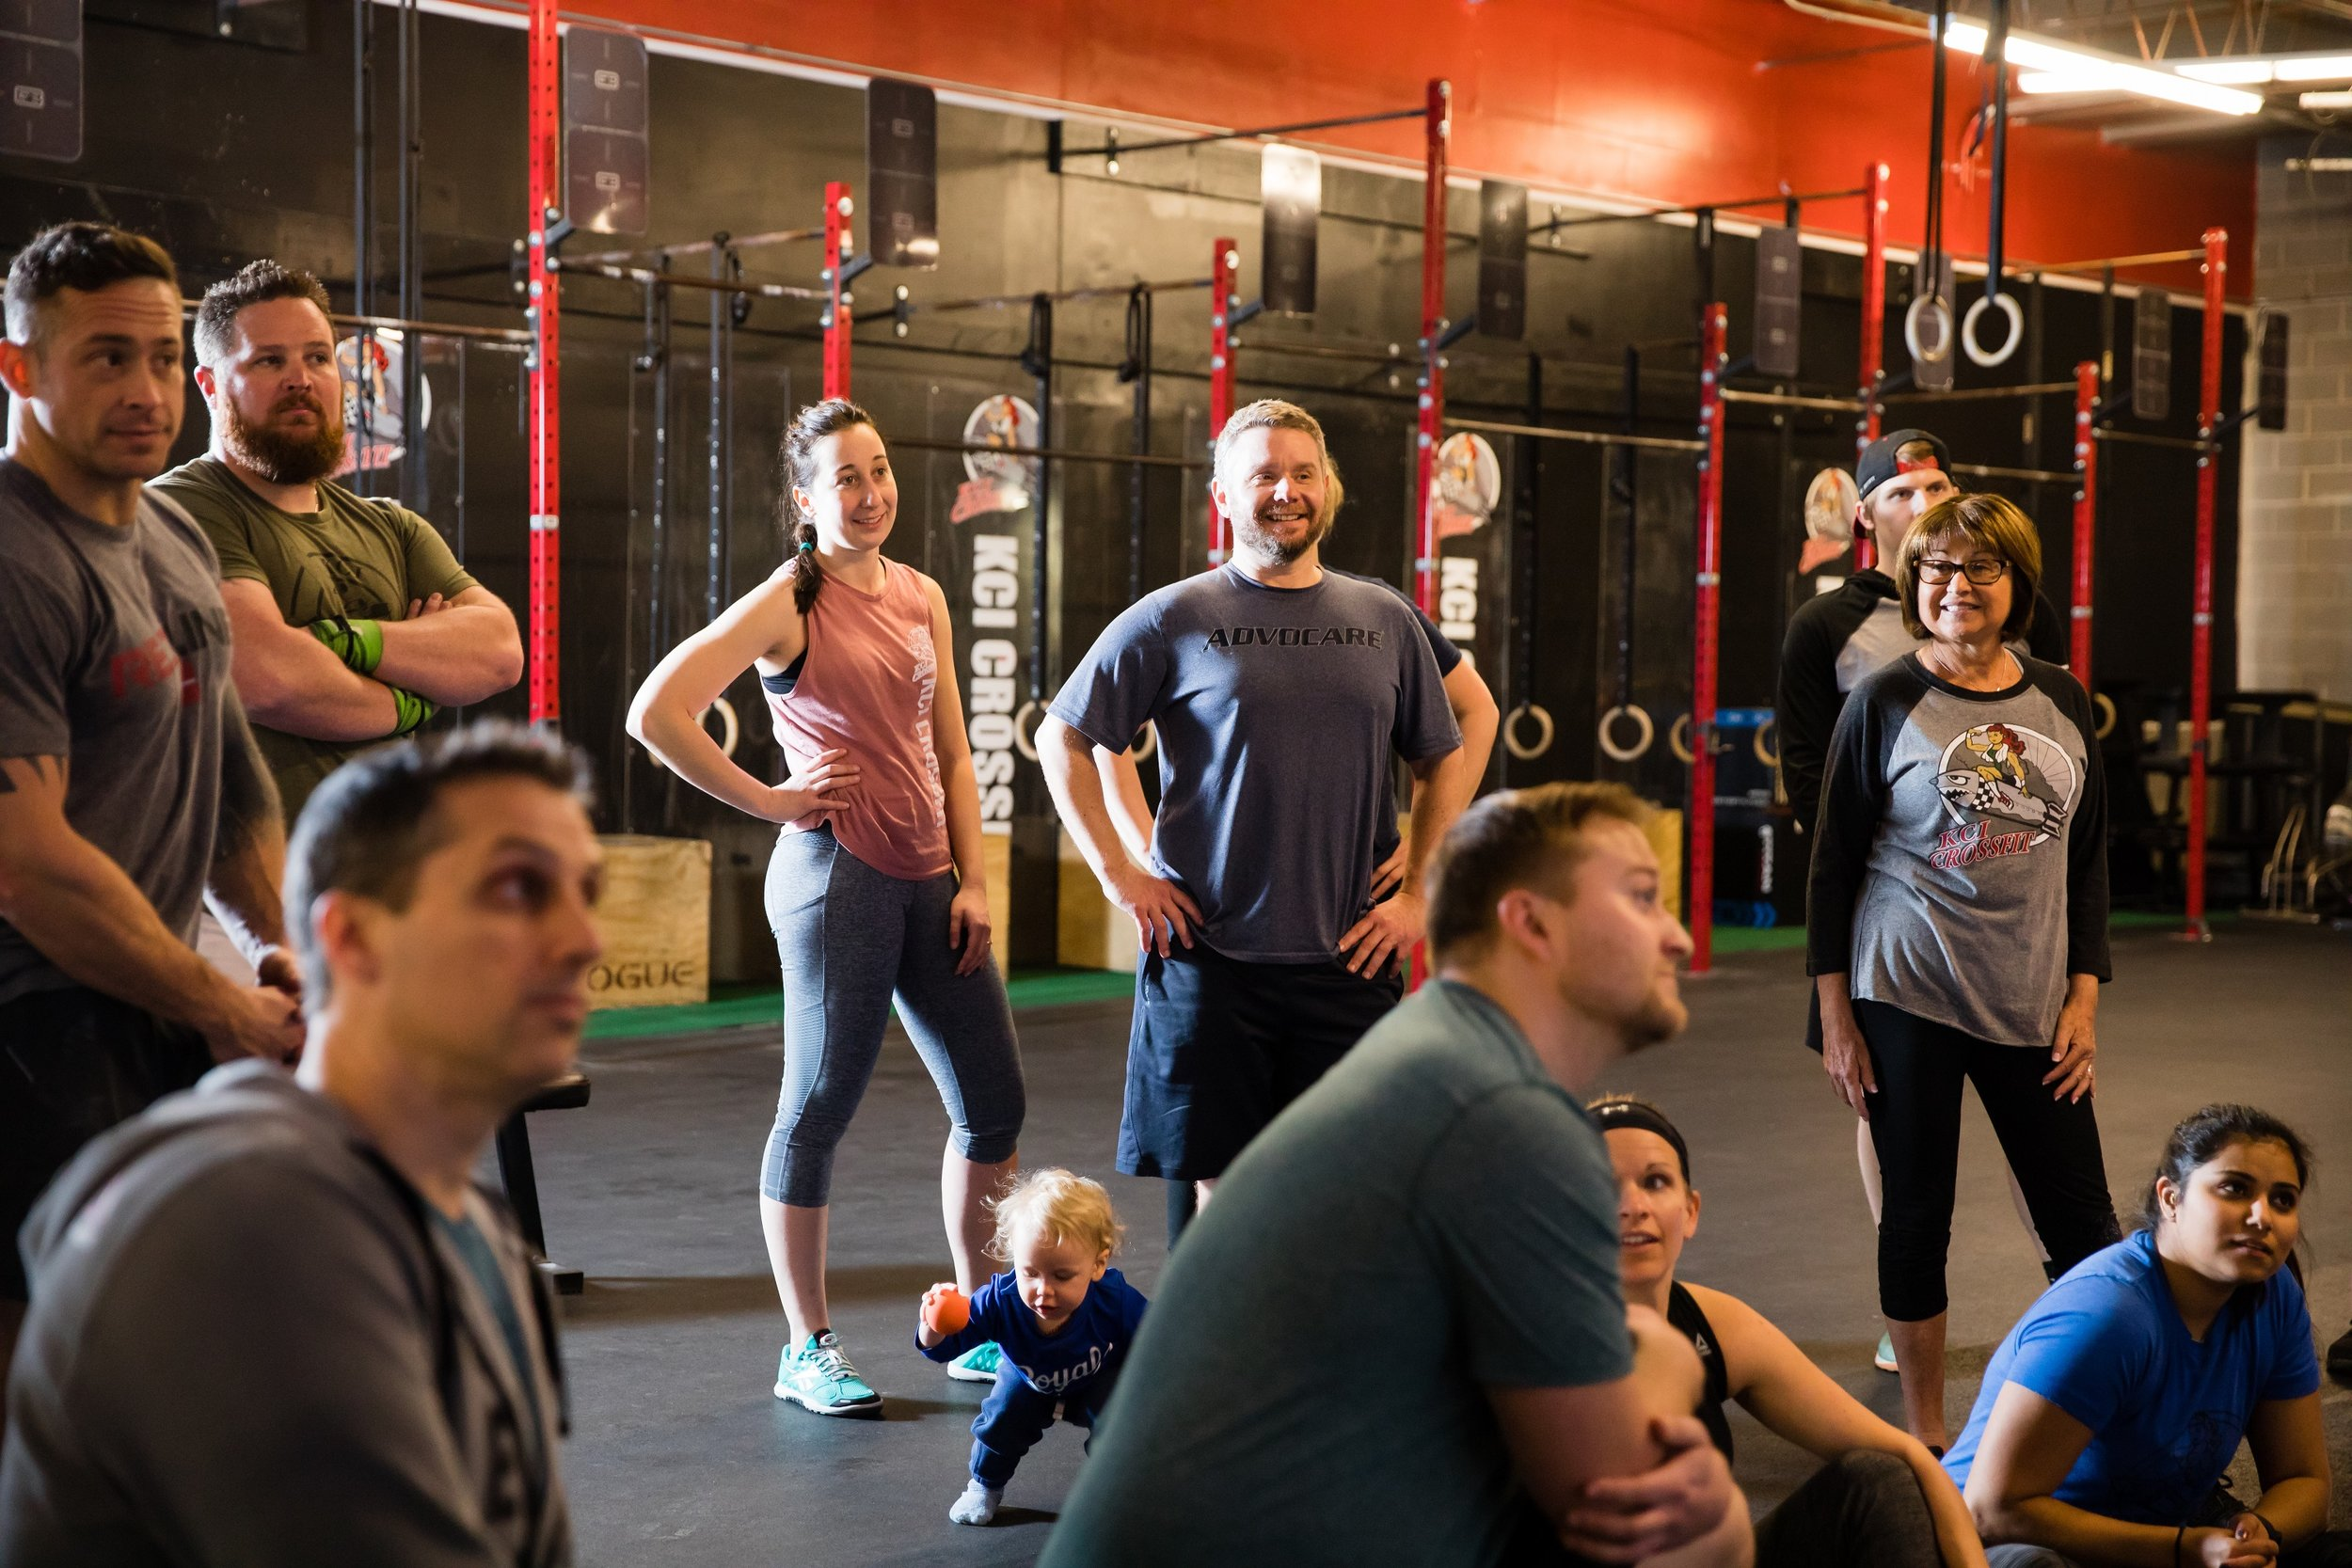 Come try your first CrossFit class! - MondayAM: 5:15am, 6:15am, 7:30am, 9amPM: 12pm, 4:15pm, 5:15pm, 6:15pmTuesdayAM: 5:15am, 6:15am, 7:30am, 9amPM: 4:15pm, 5:15pm, 6:15pmWednesdayAM: 5:15am, 6:15am, 7:30am, 9amPM: 4:15pm, 5:15pm, 6:15pmThursdayAM: 5:15amOpen Gym hours: 9-10am, 4-7pmPM: 12pm, 5:15pm Barbell ClubFridayAM: 5:15am, 6:15am, 7:30am, 9amPM: 4:15pm, 5:15pm, 6:15pmSaturday8am Barbell Club, 9:15am CrossFit Partner WODKIDS CLASS:call us for our current crossfit kids schedule816-659-3076